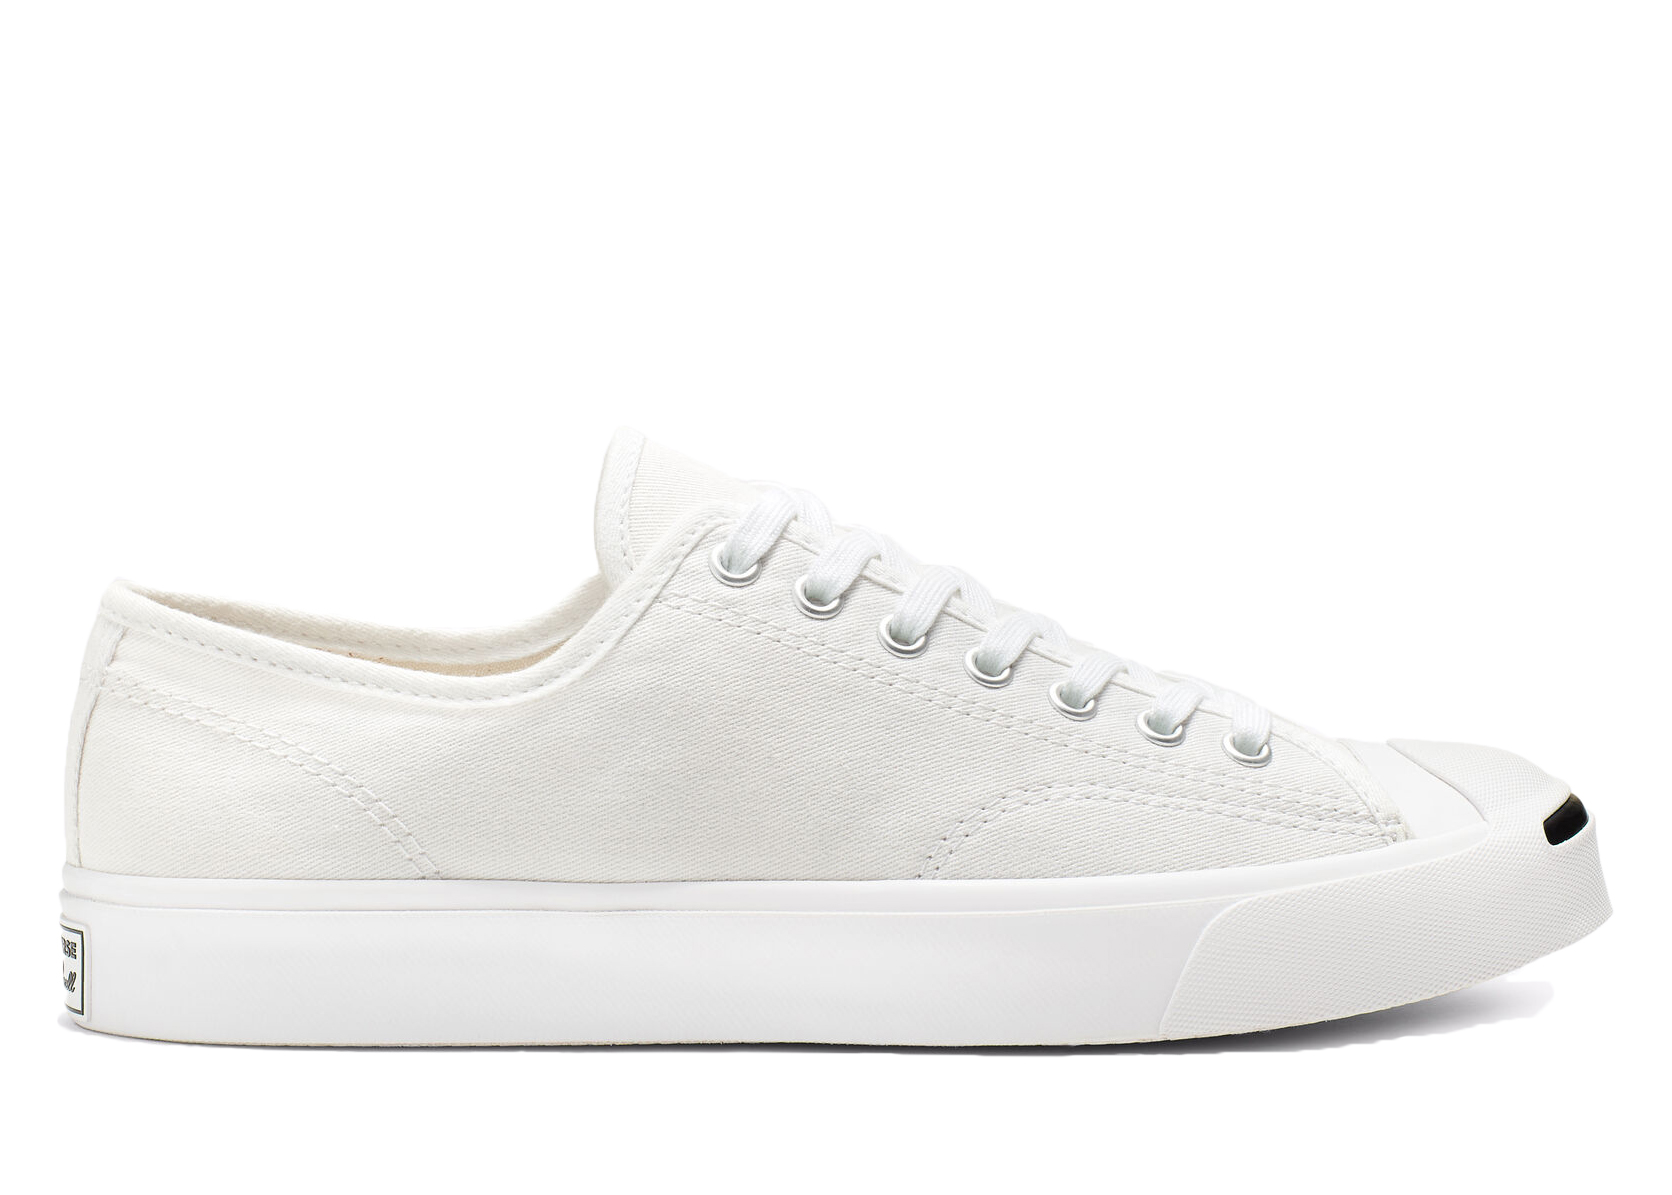 Converse Jack Purcell Canvas Low White